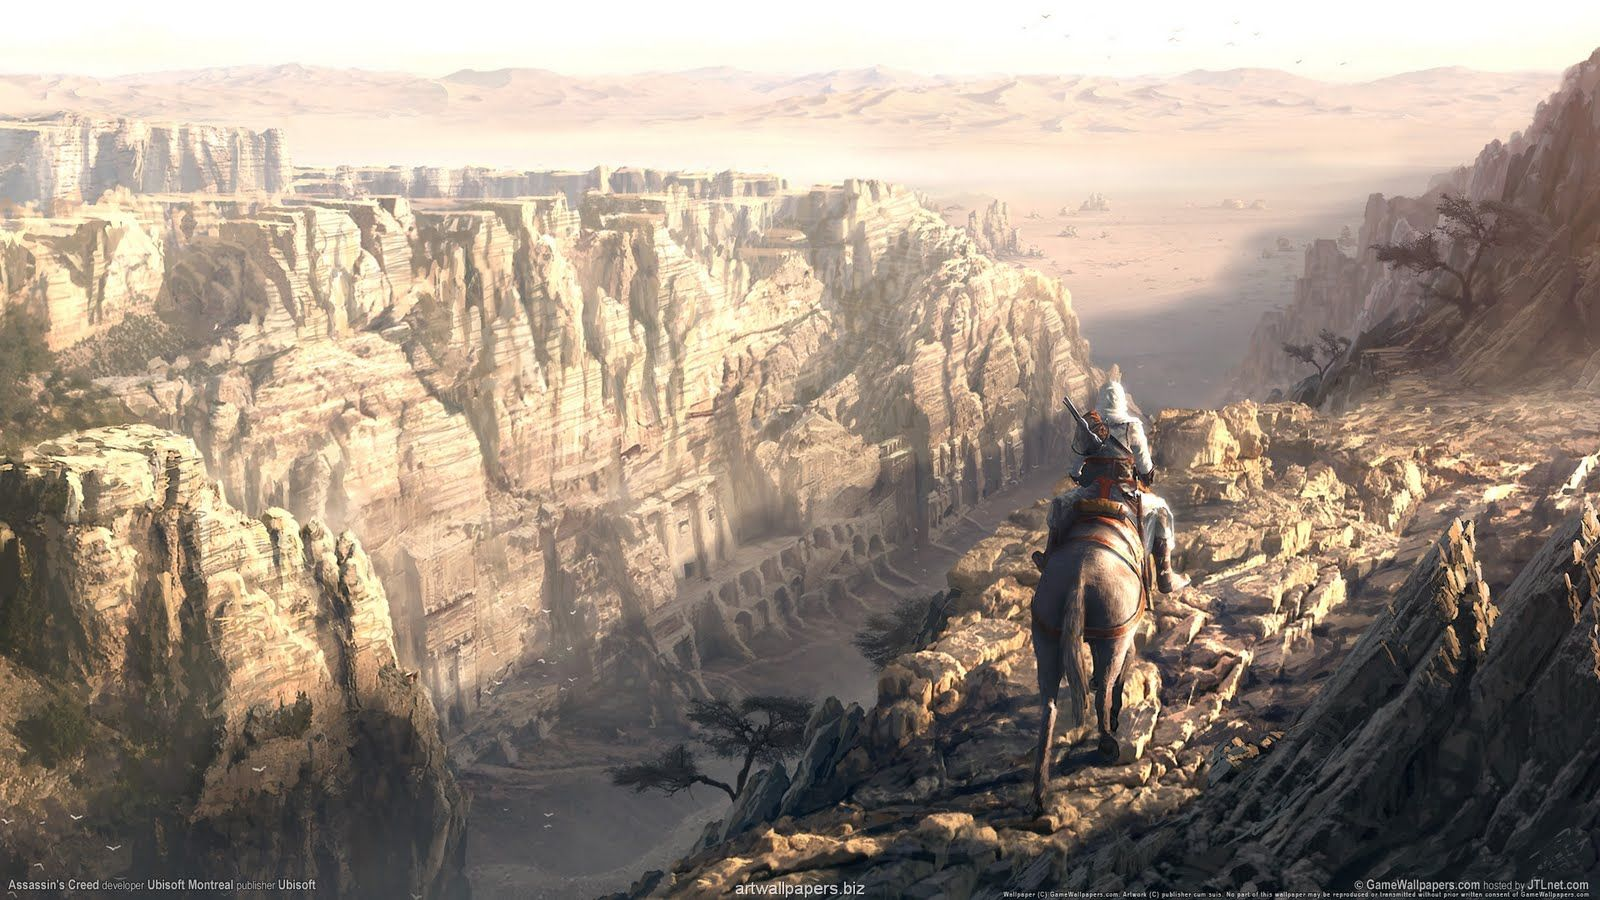 Hd wallpaper games - Collection Of Full Hd Game Wallpapers On Hdwallpapers 1600 900 Full Hd Games Wallpapers 47 Wallpapers Adorable Wallpapers Desktop Pinterest